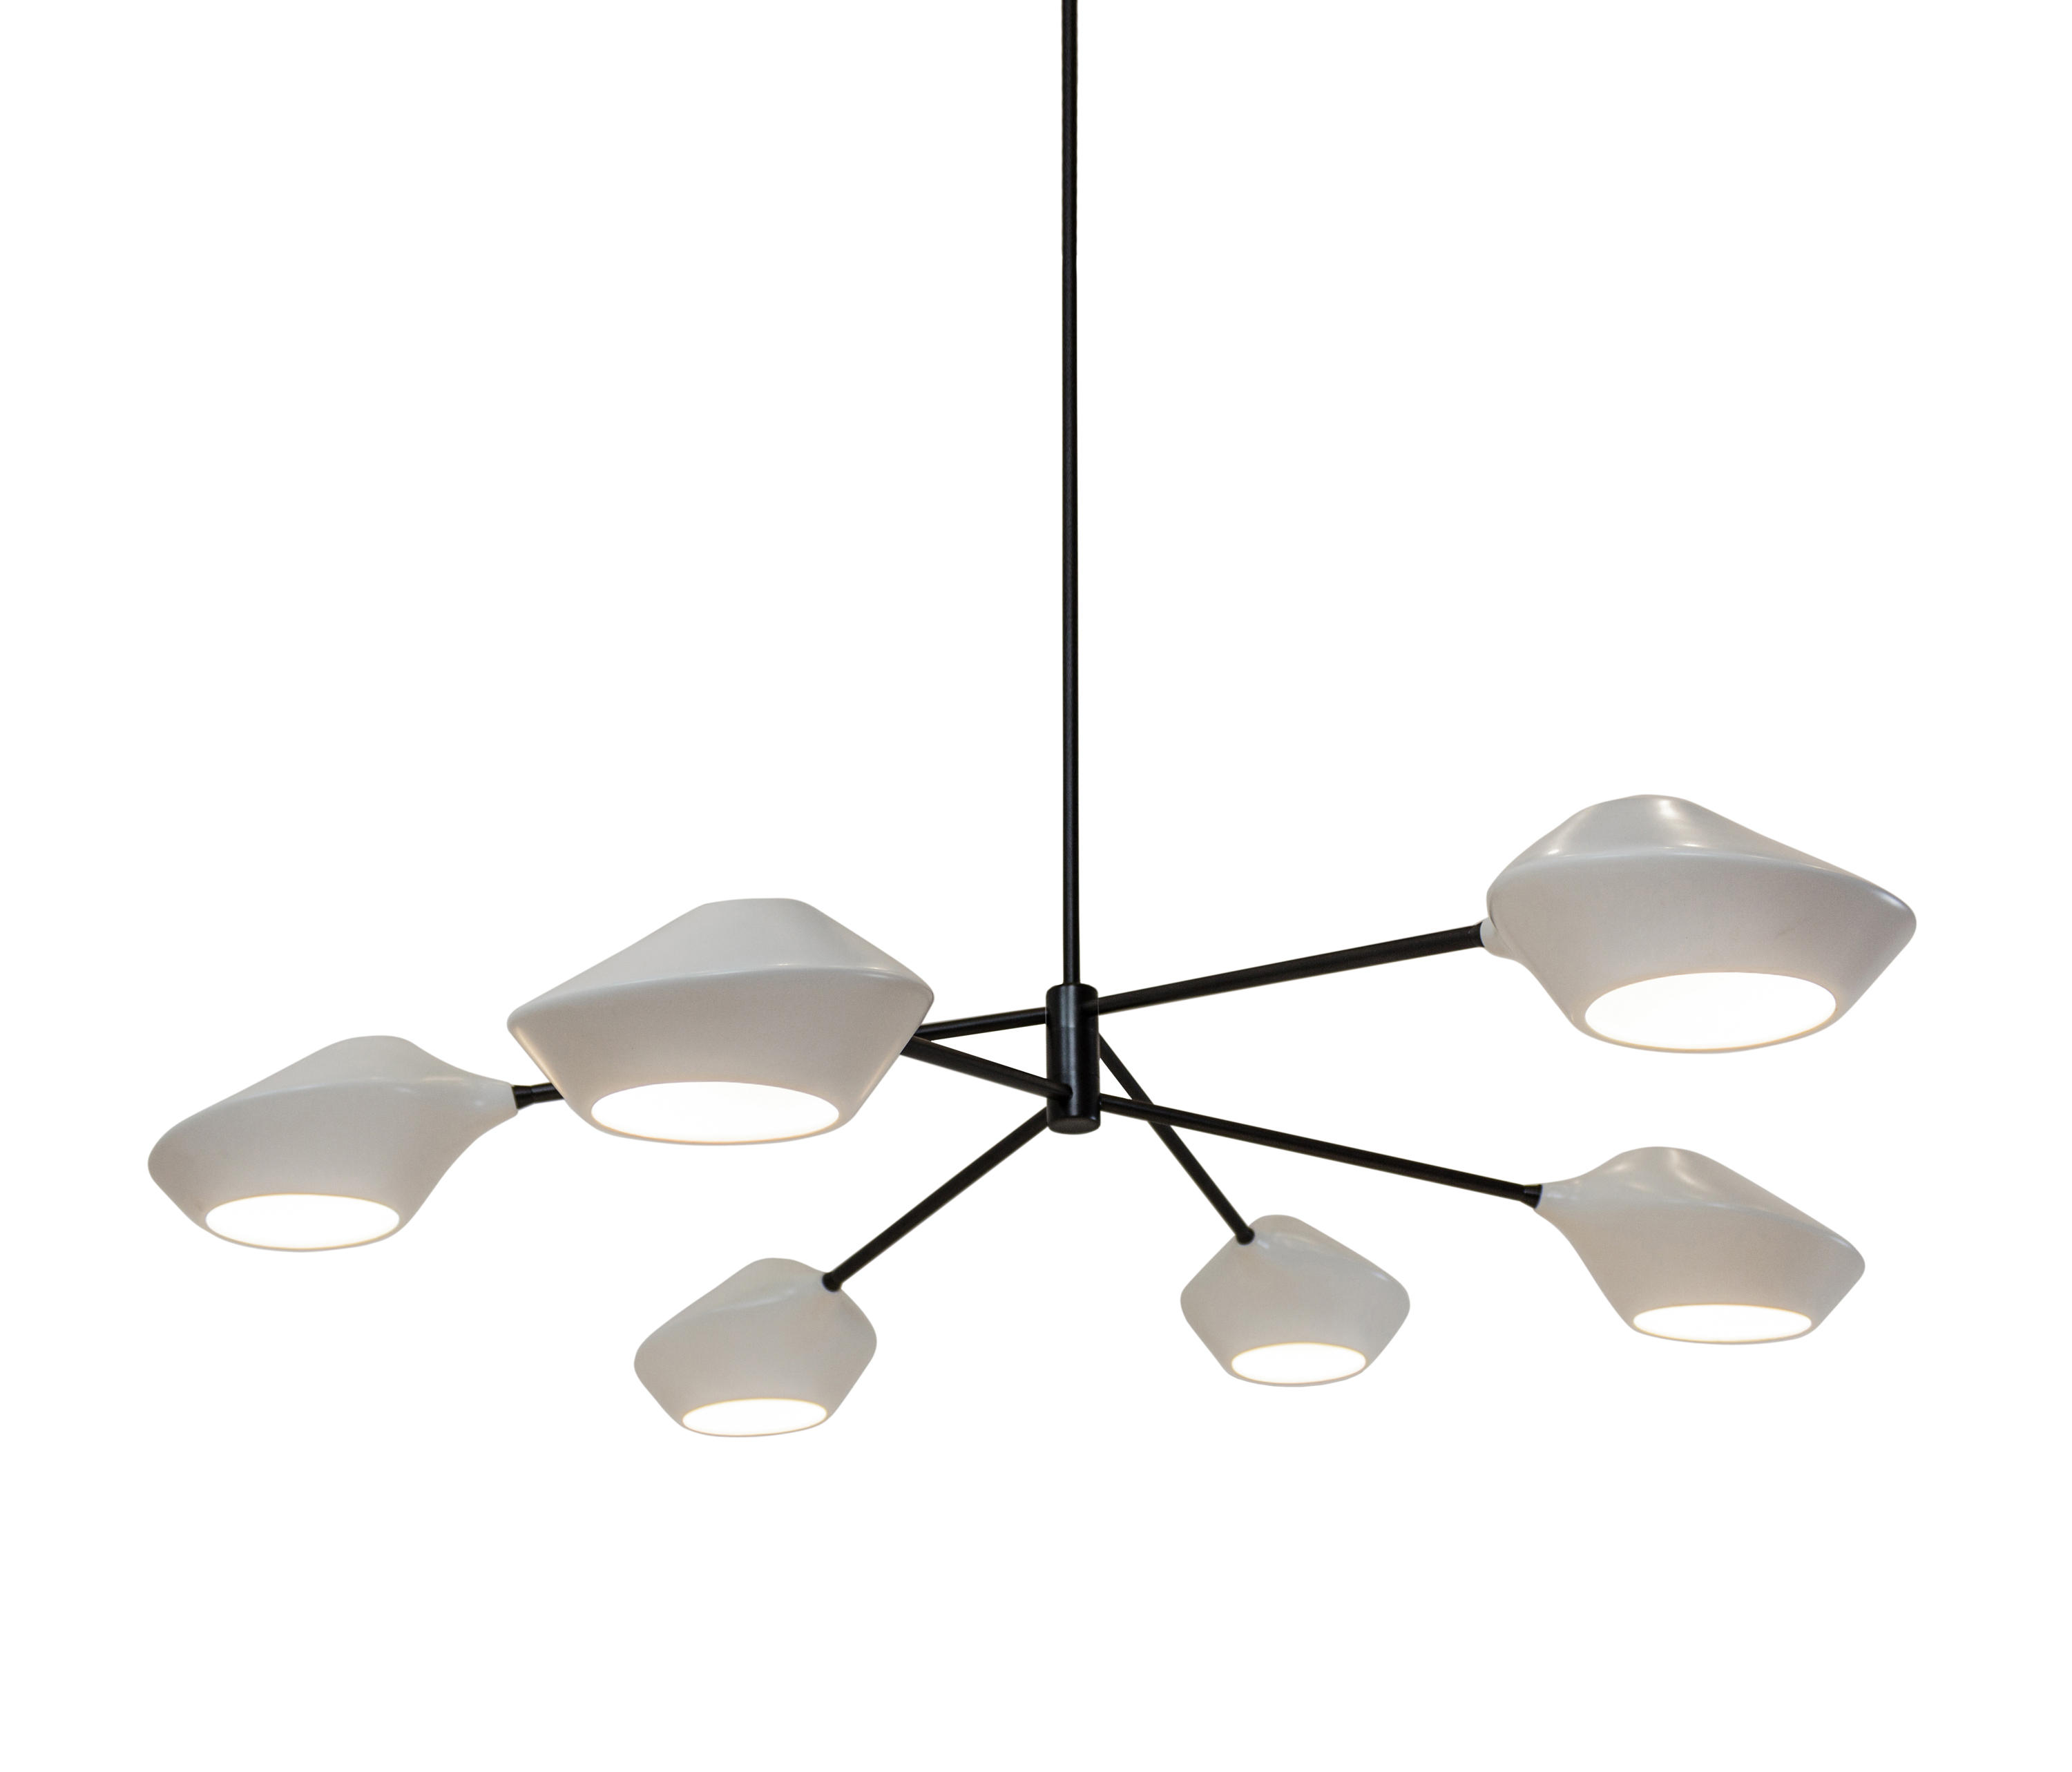 solaris chandelier chandeliers pendant bronze orb wonderful designs ballard home fixture light clearance depot ideas